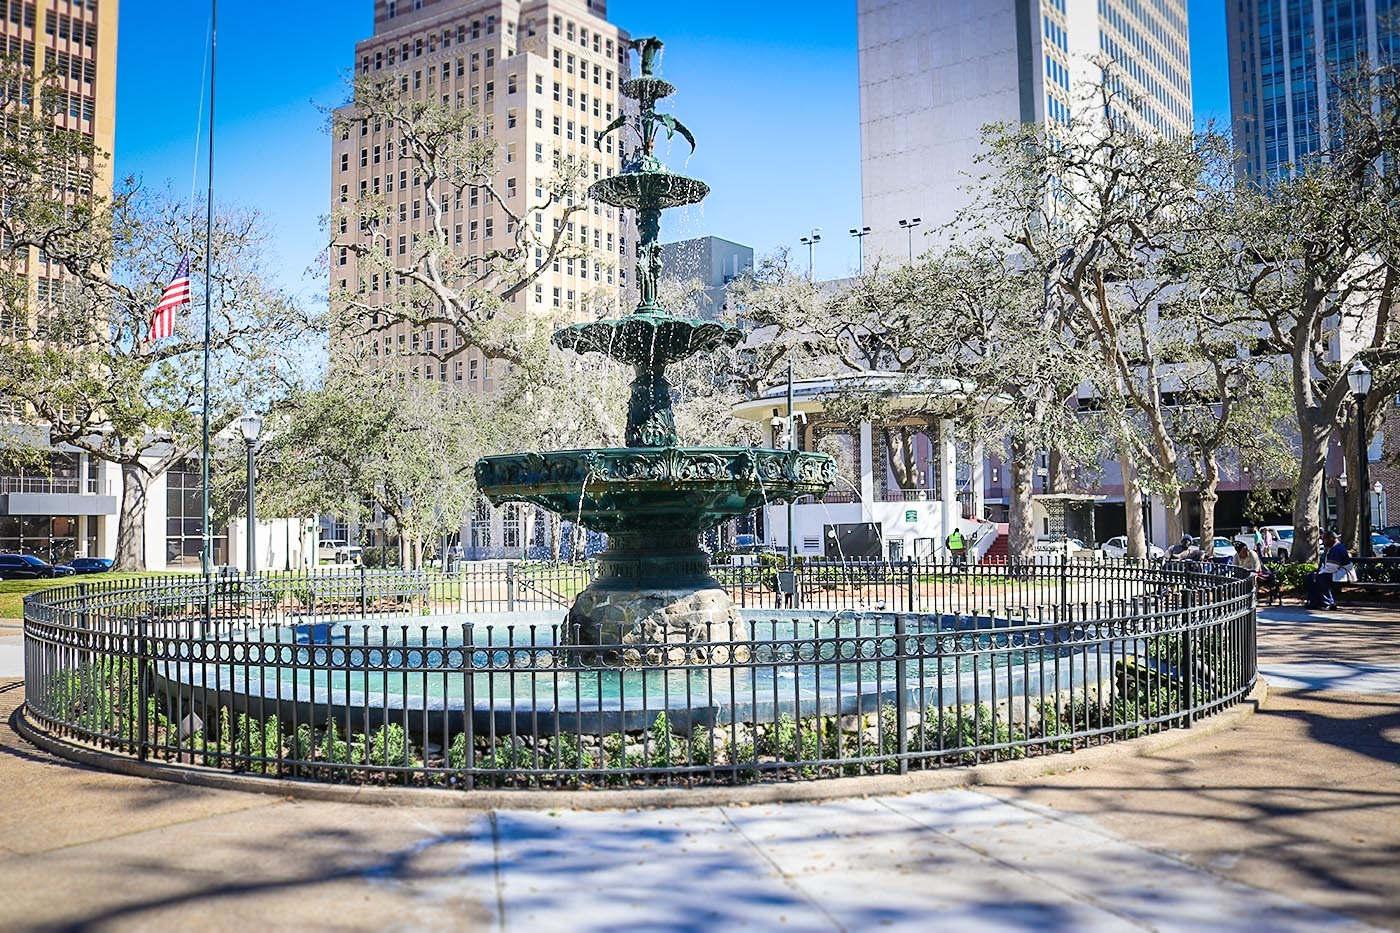 Ketchum Fountain is the center of Bienville Square in downtown Mobile.